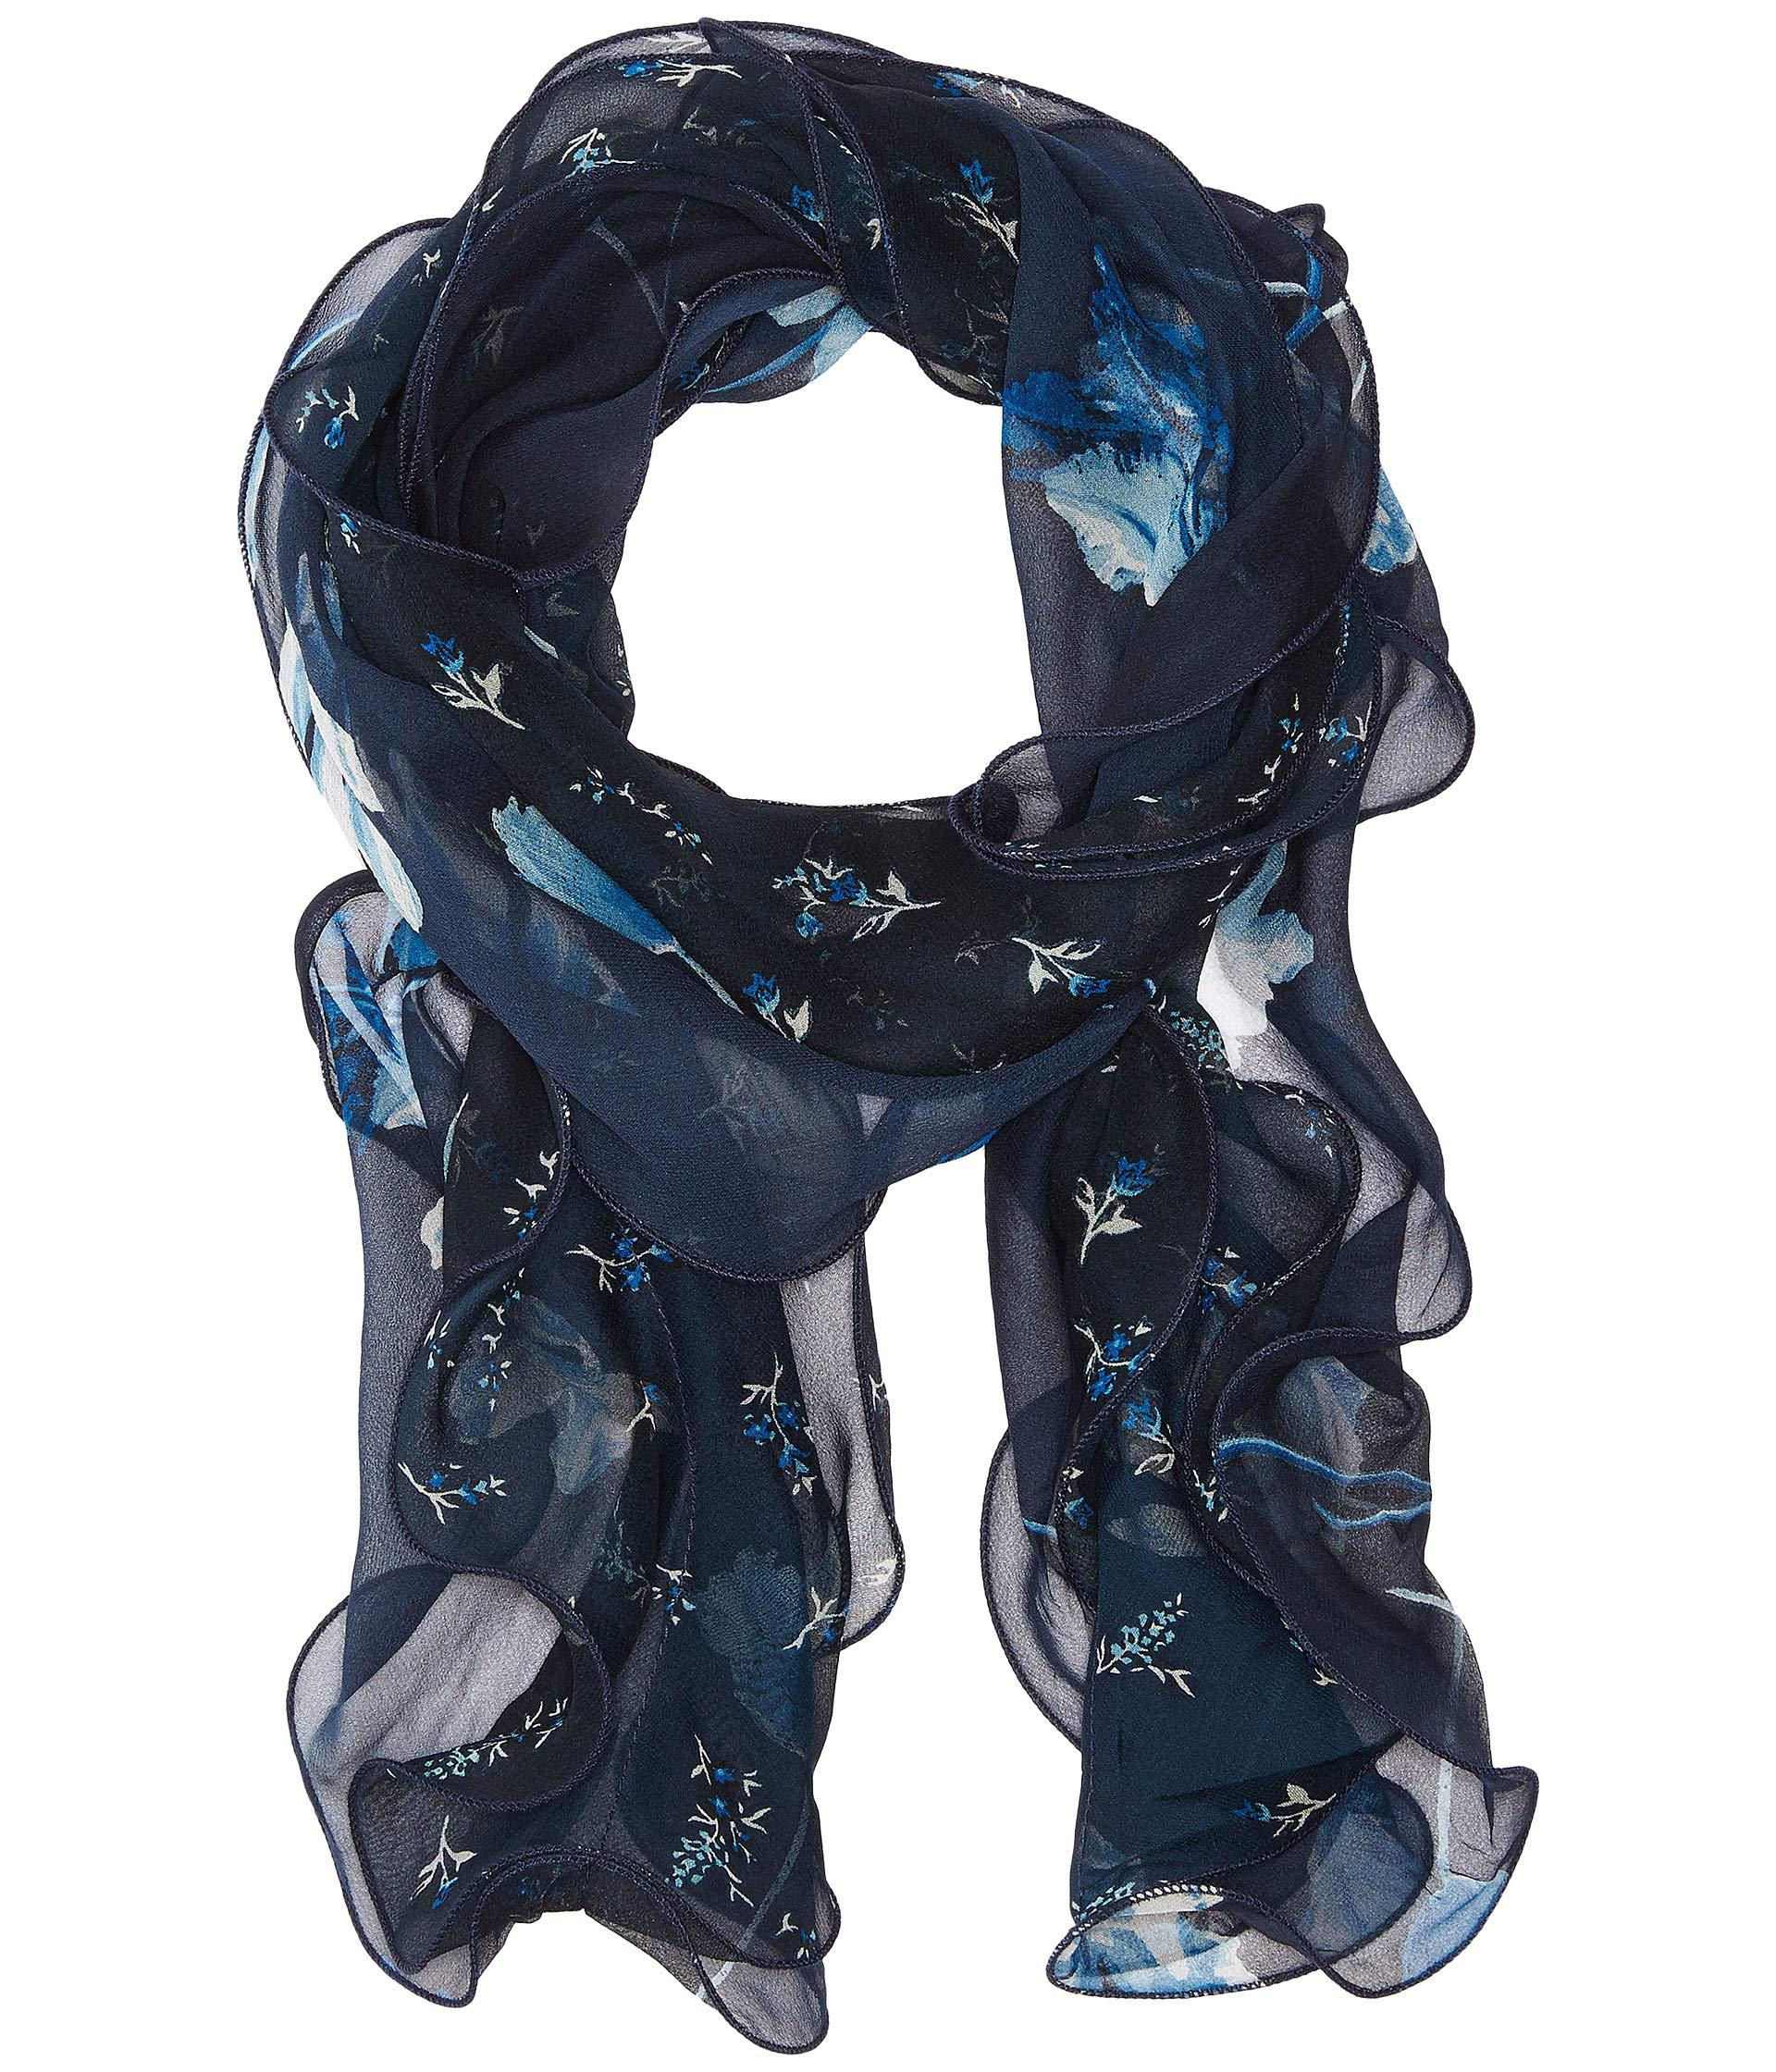 Lyst - Lauren By Ralph Lauren Sonia (navy) Scarves in Blue 4ecfd0d5208